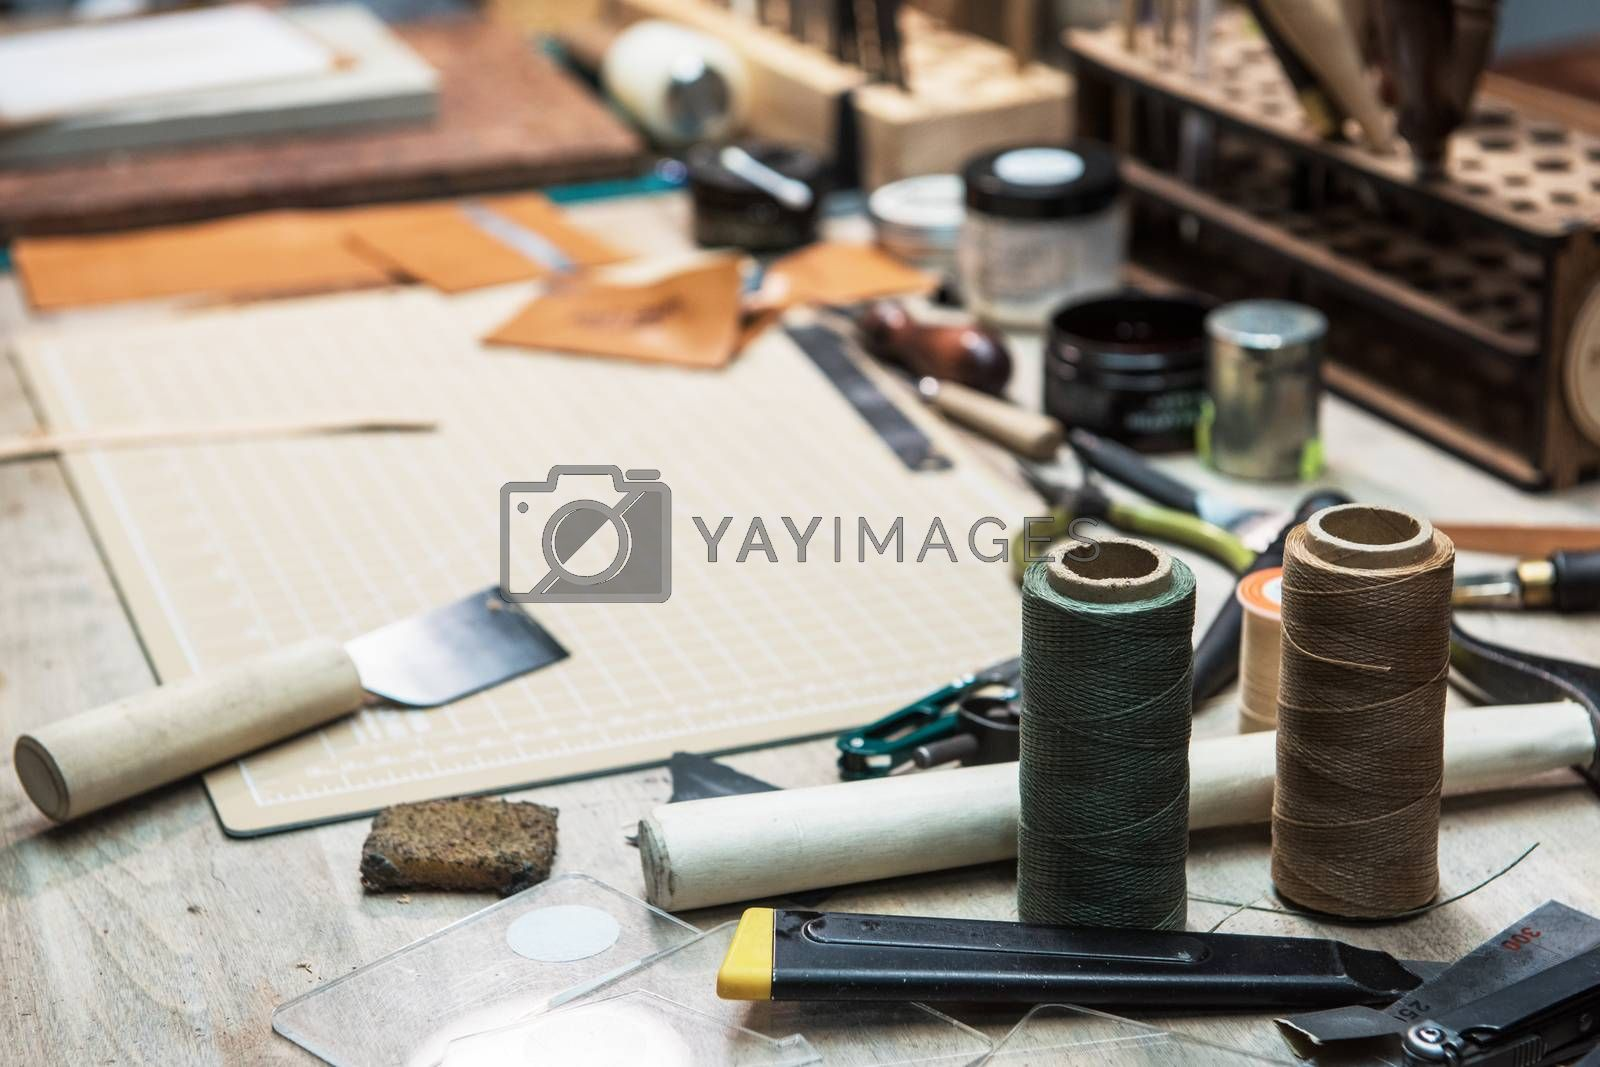 Leathermaker's work desk. Tools and leather at cobbler workplace. Tools for craft production of leather goods on wooden table.